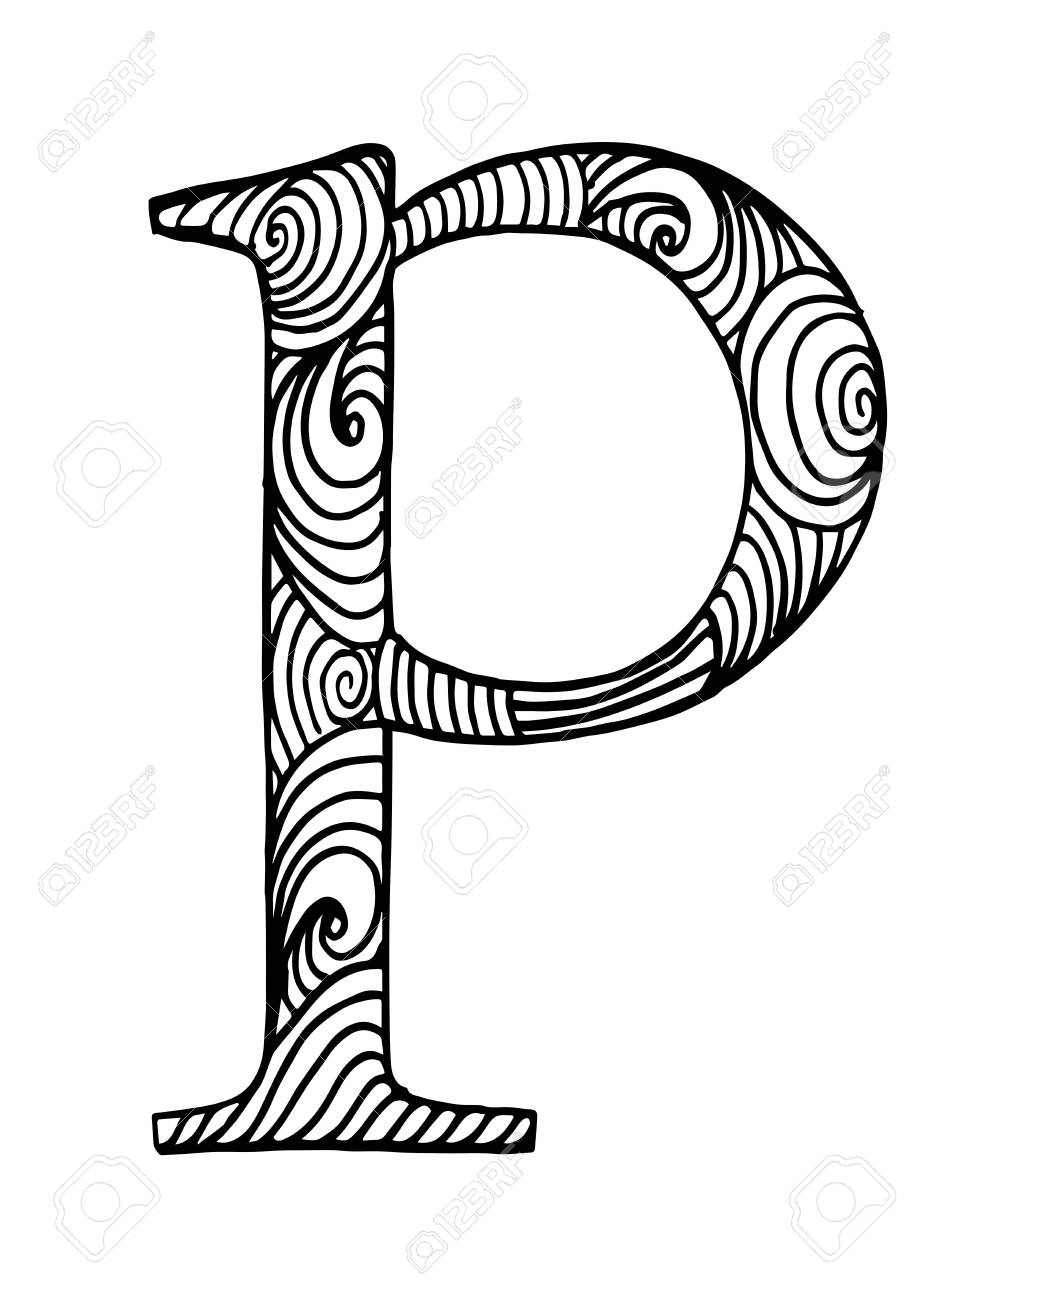 Zentangle Stylized Alphabet. Letter P In Doodle Style. Hand Drawn